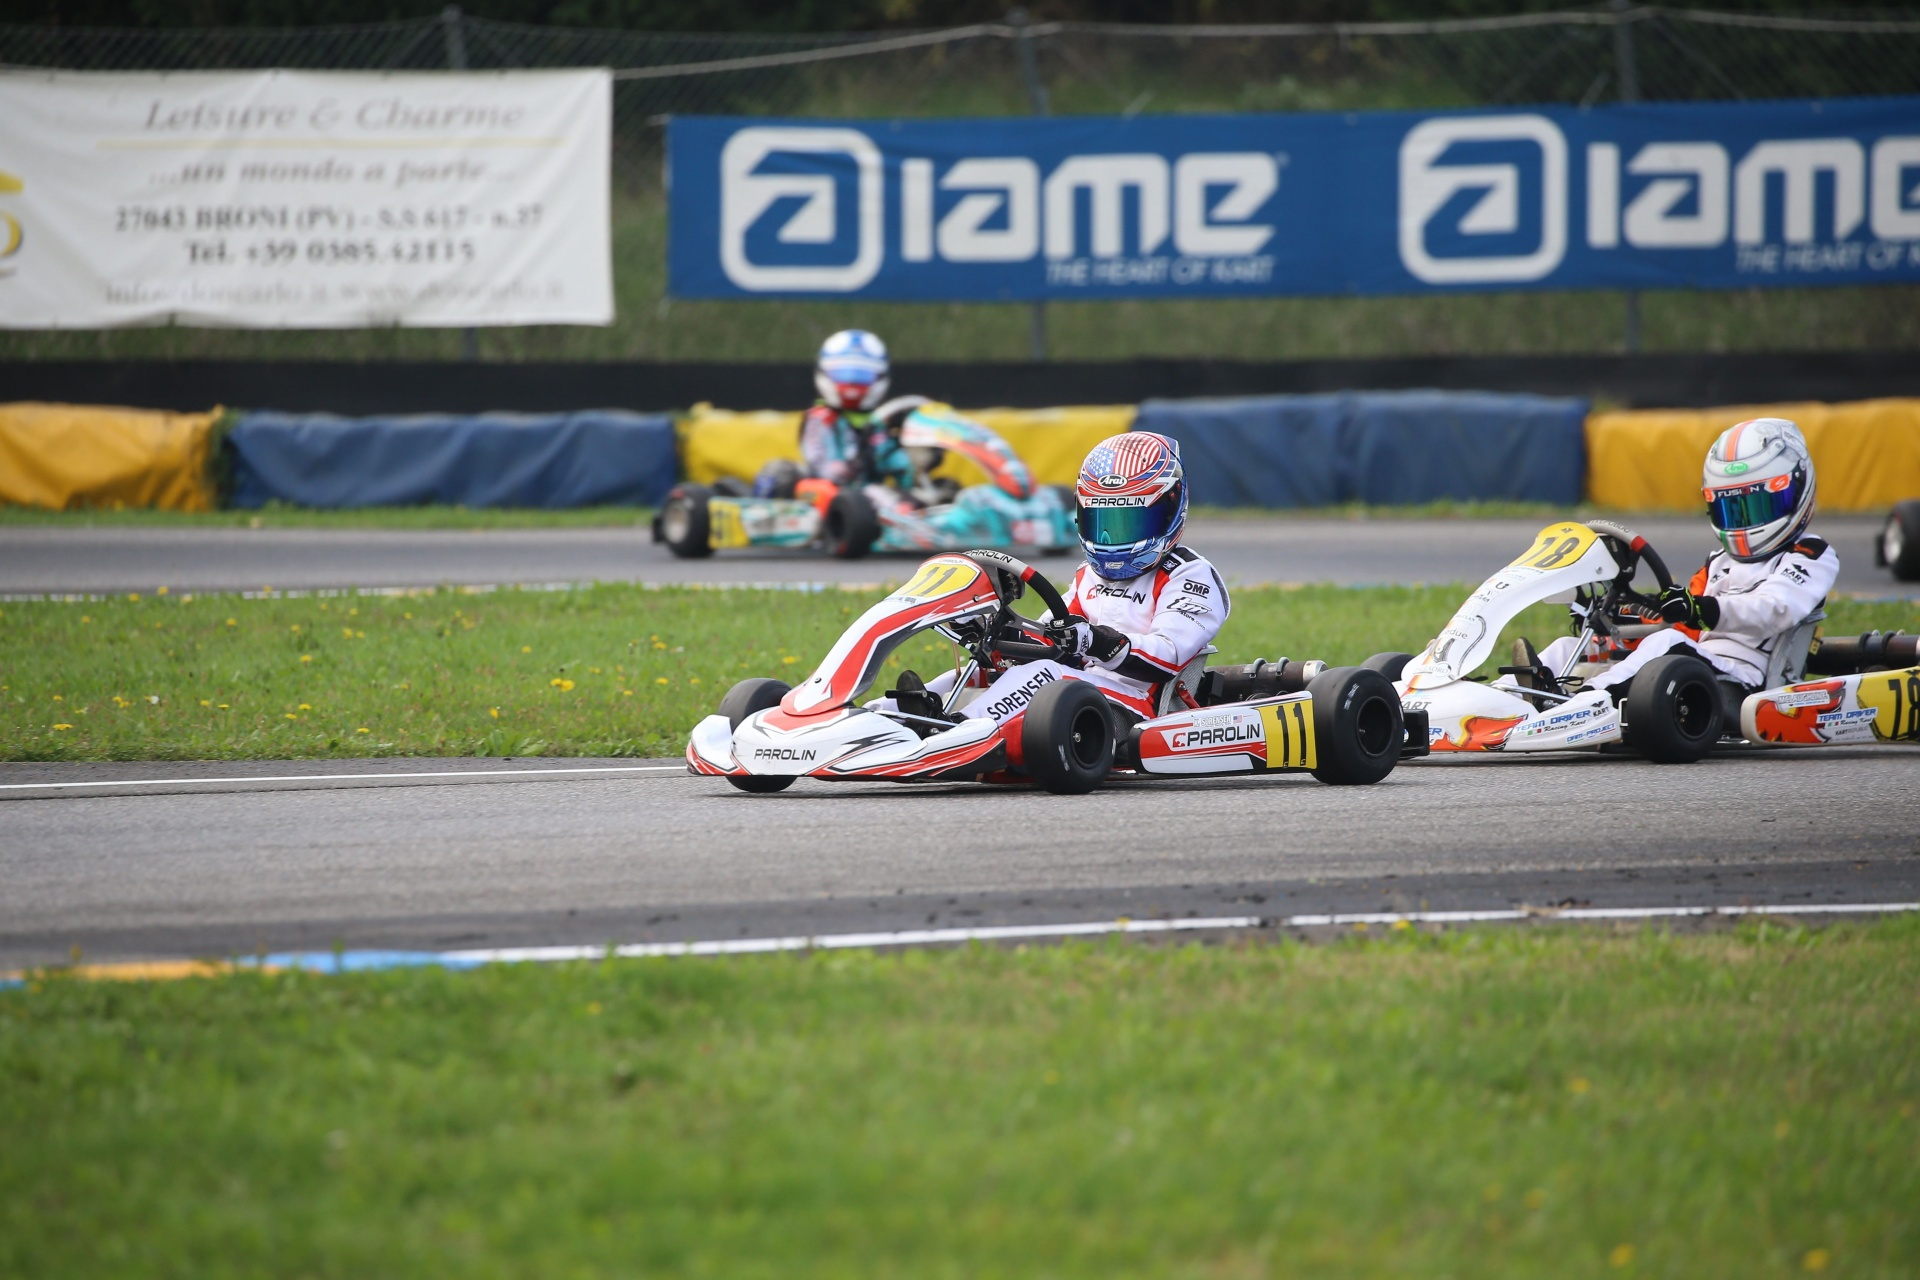 Kai Sorensen on the final podium of the Italian ACI Championship